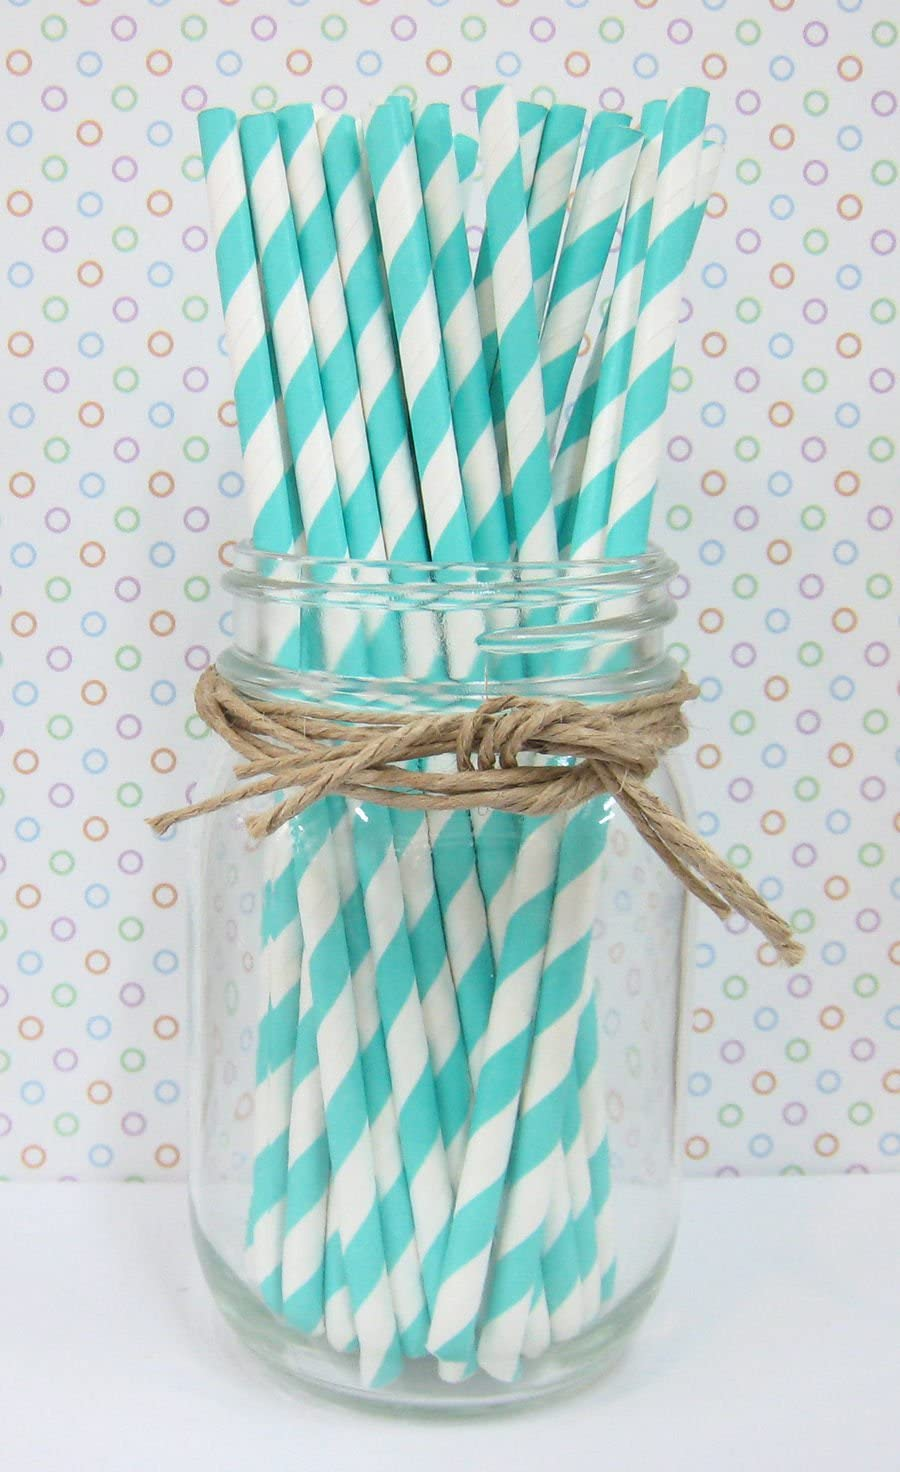 50 Stripped Paper Straws Birthday Wedding Baby Shower Party - Aqua Blue Striped